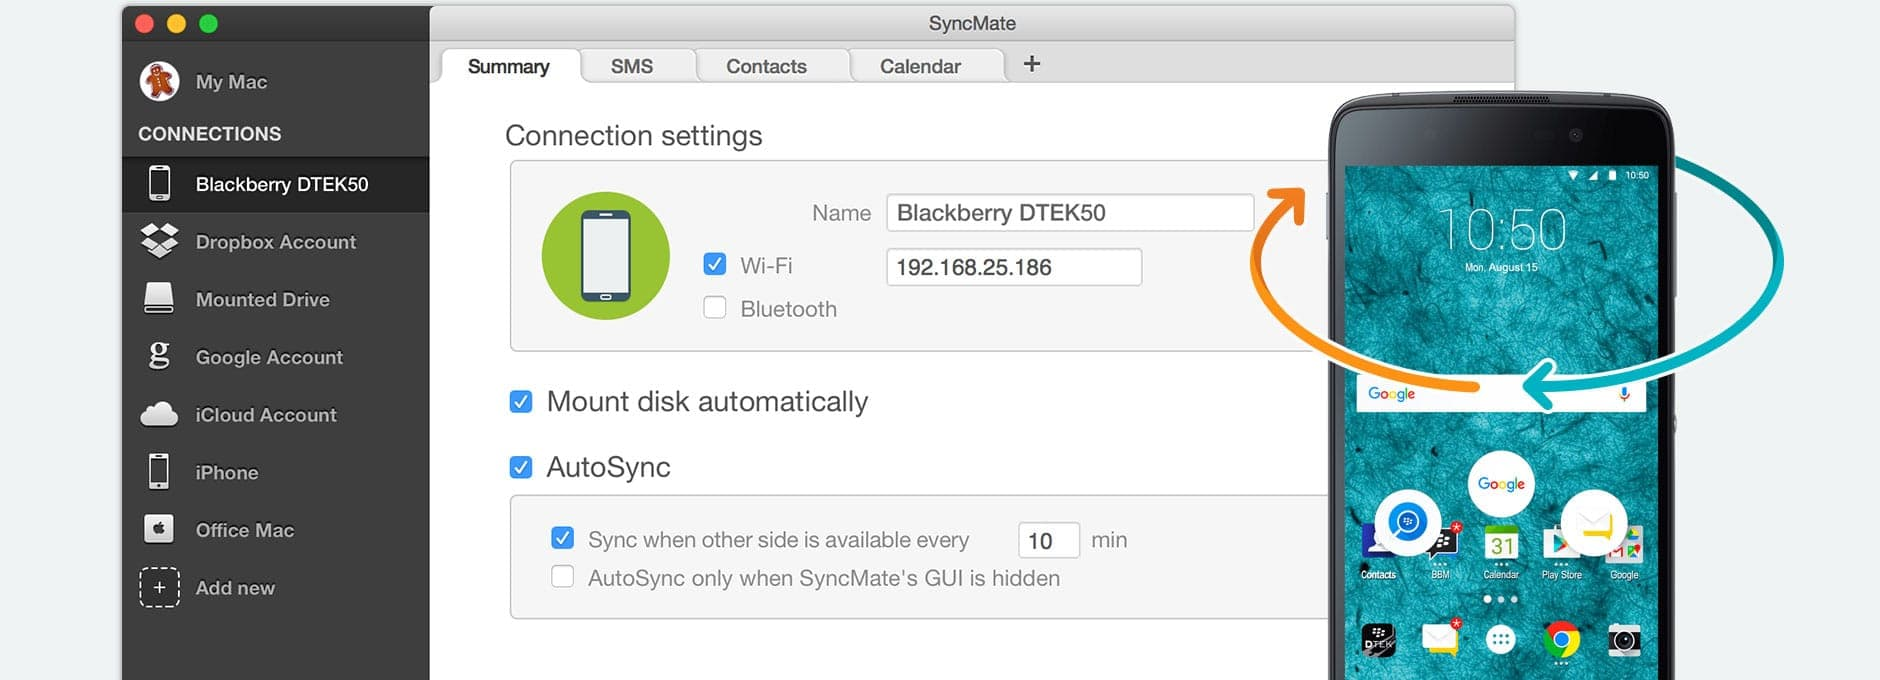 How to sync Android BlackBerry phones with Mac